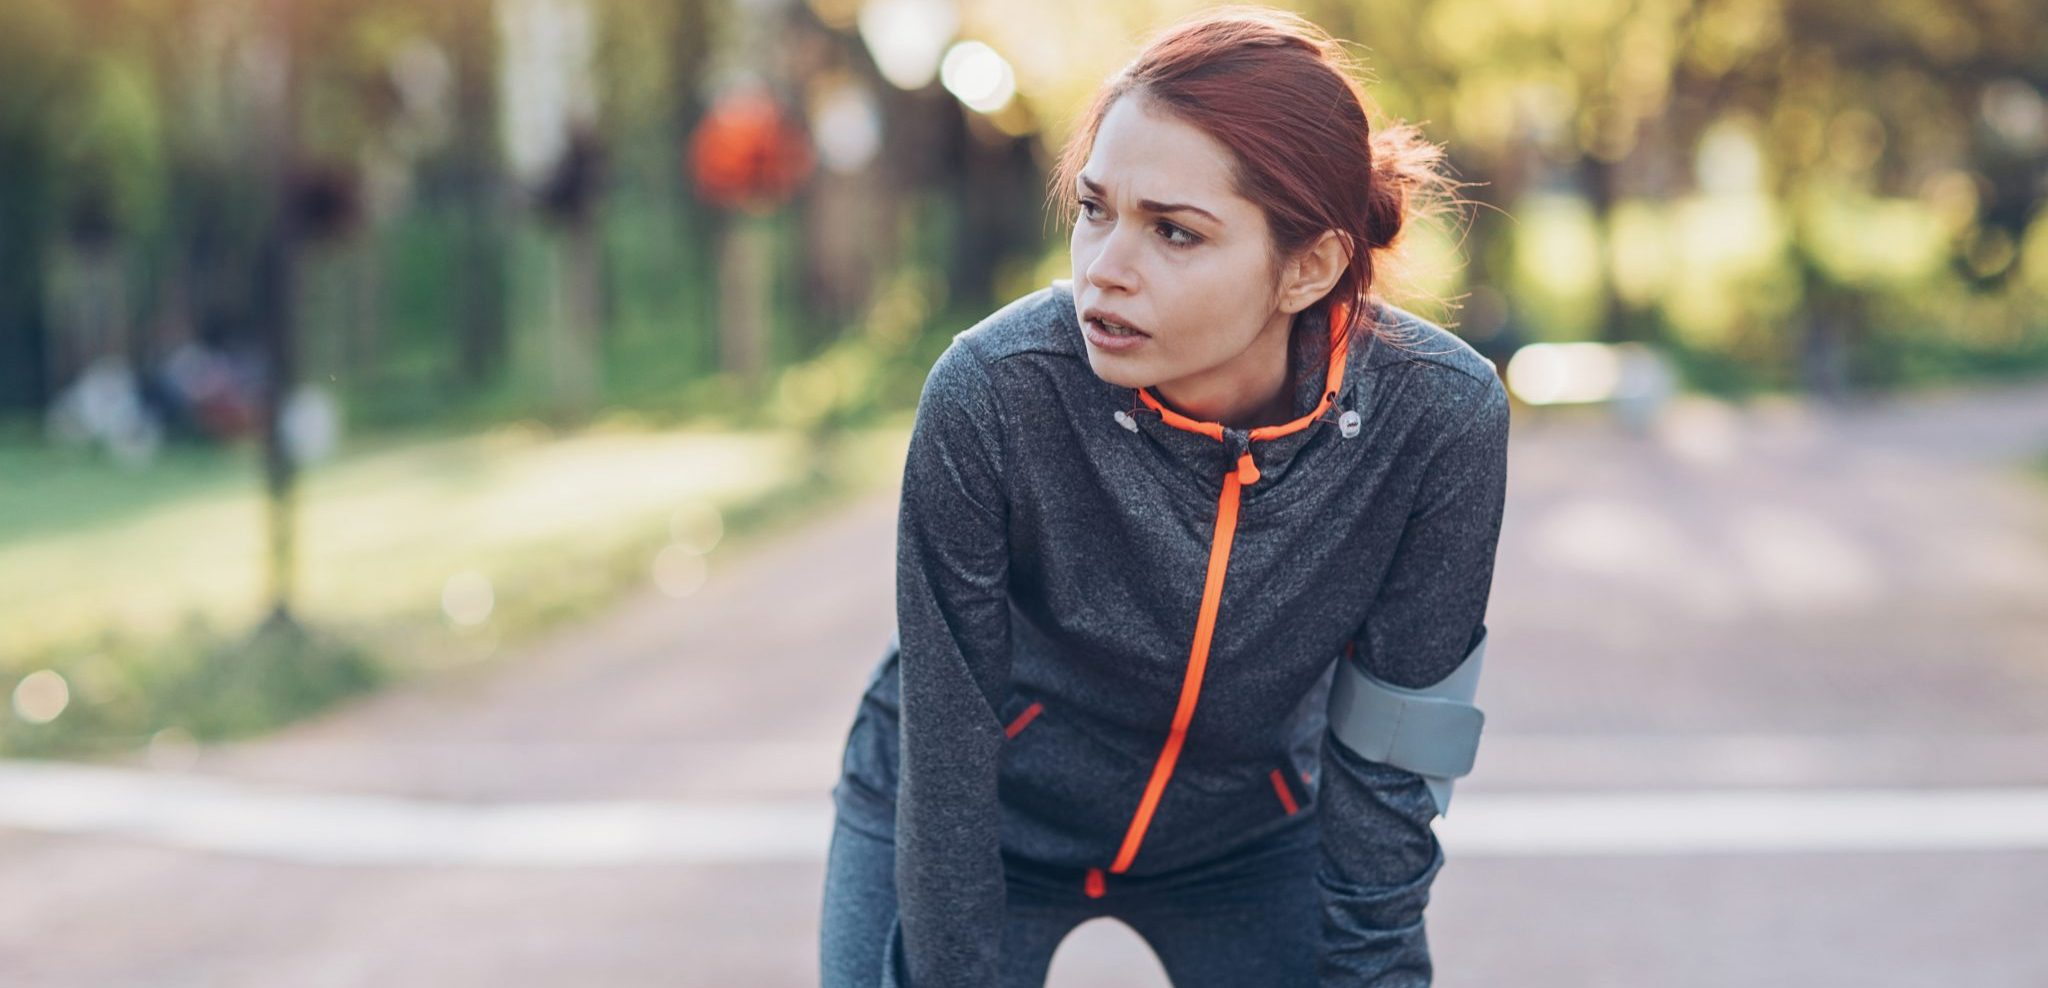 Drinking and Running: What Could Go Wrong?